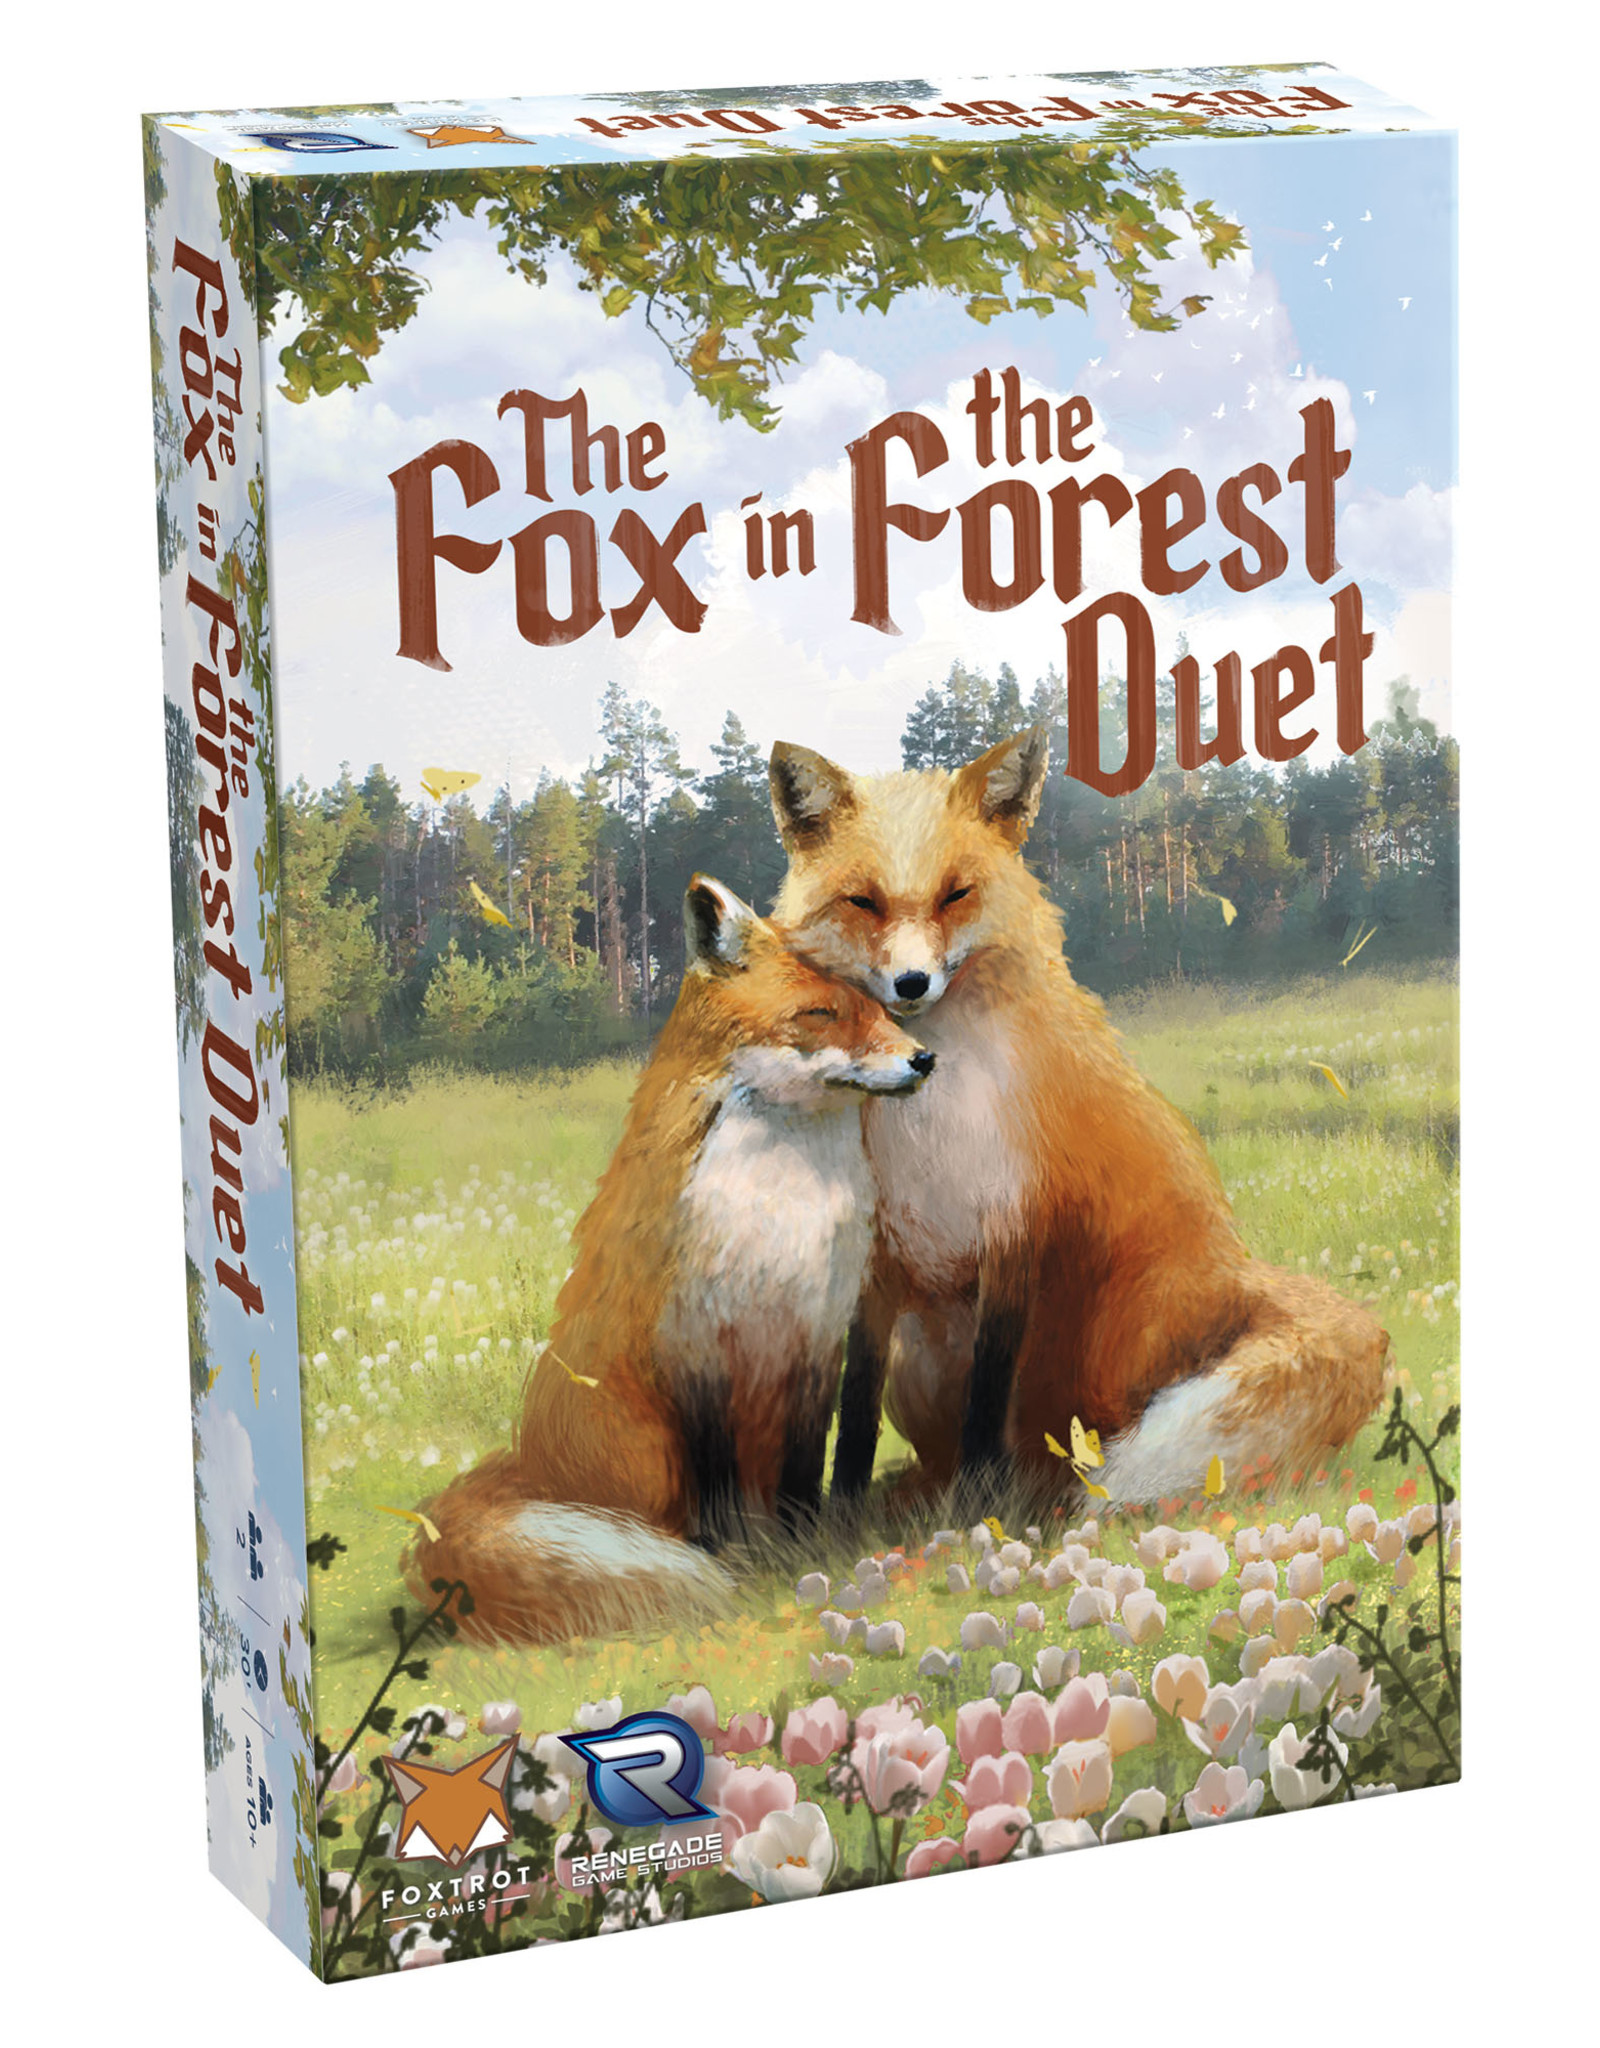 The Fox in the Forest: Duet